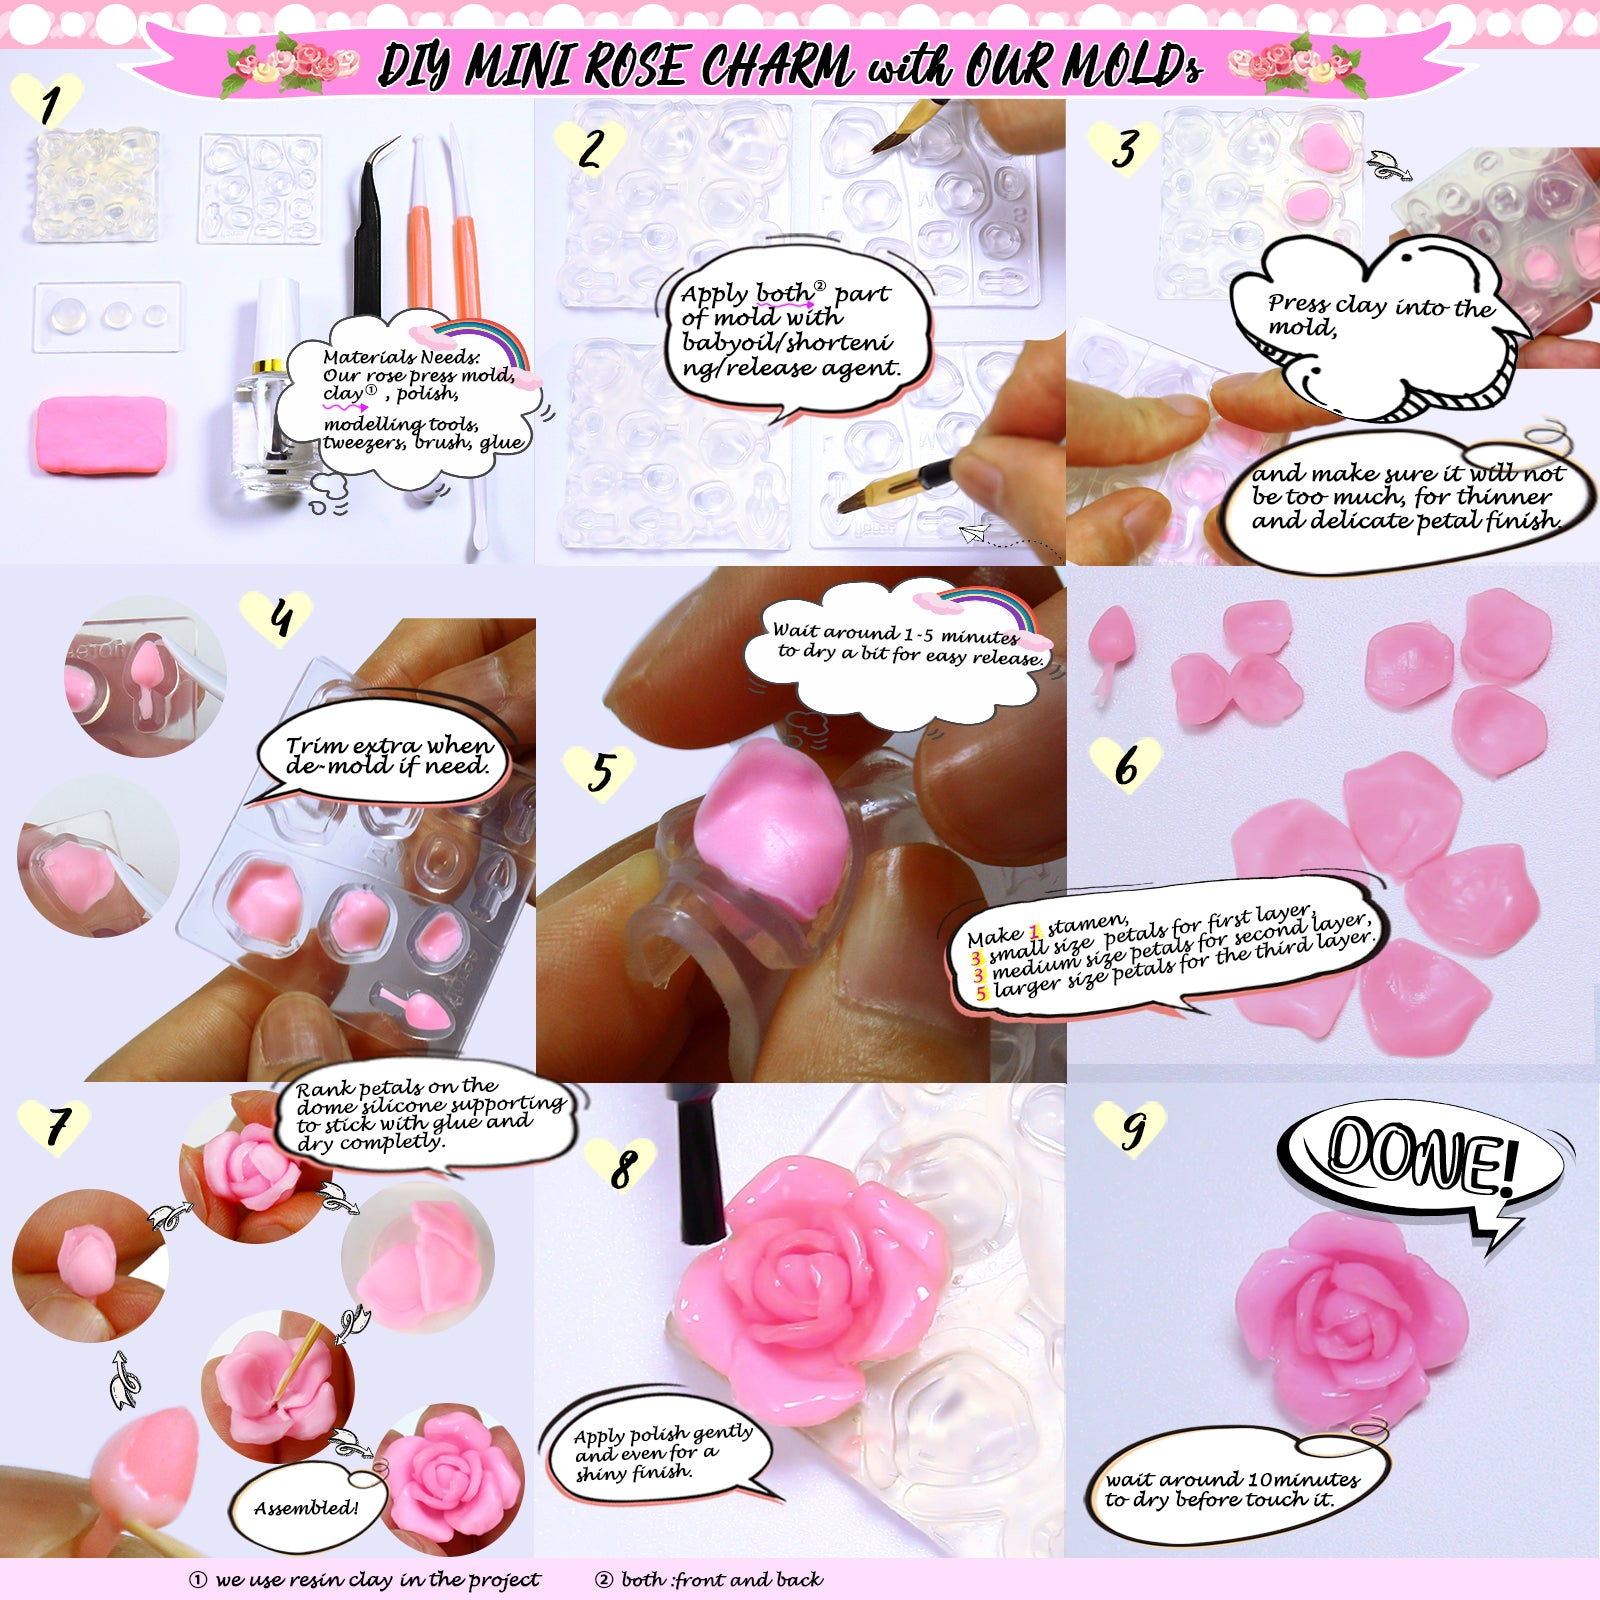 Wax Handmade Candle Cactus Flower Resin Casting Molds for Cake Decorating Pendolr 6 Pack Succulent Silicone Mold Epoxy Resin Polymer Clay Fondant etc